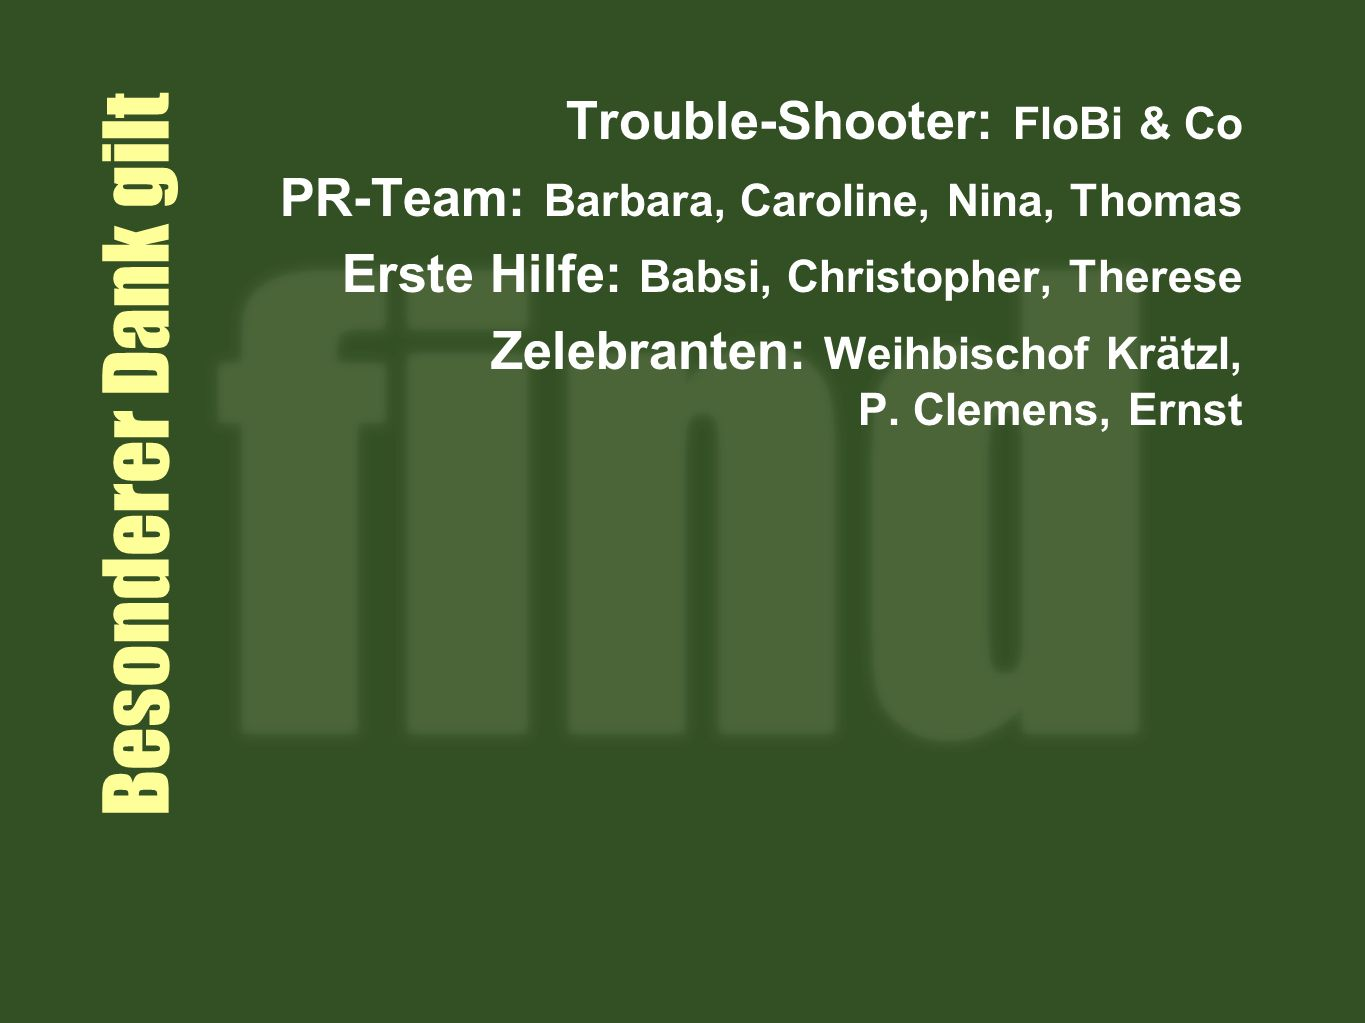 Besonderer Dank gilt Trouble-Shooter: FloBi & Co